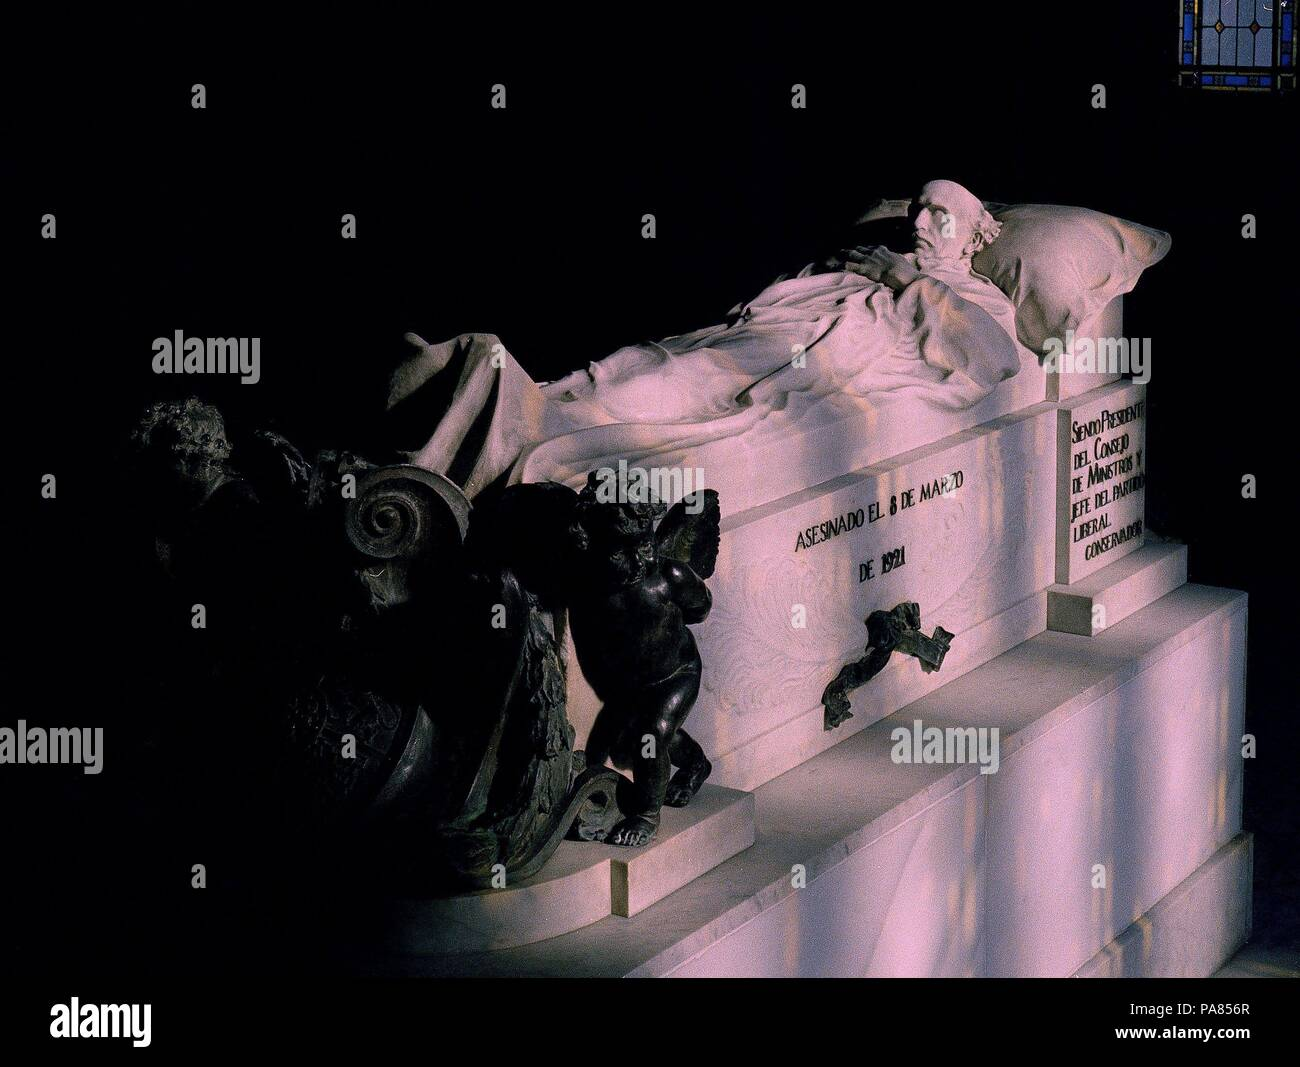 SEPULCRO DE EDUARDO DATO. Location: PANTEON DE HOMBRES ILUSTRES, MADRID, SPAIN. Stock Photo